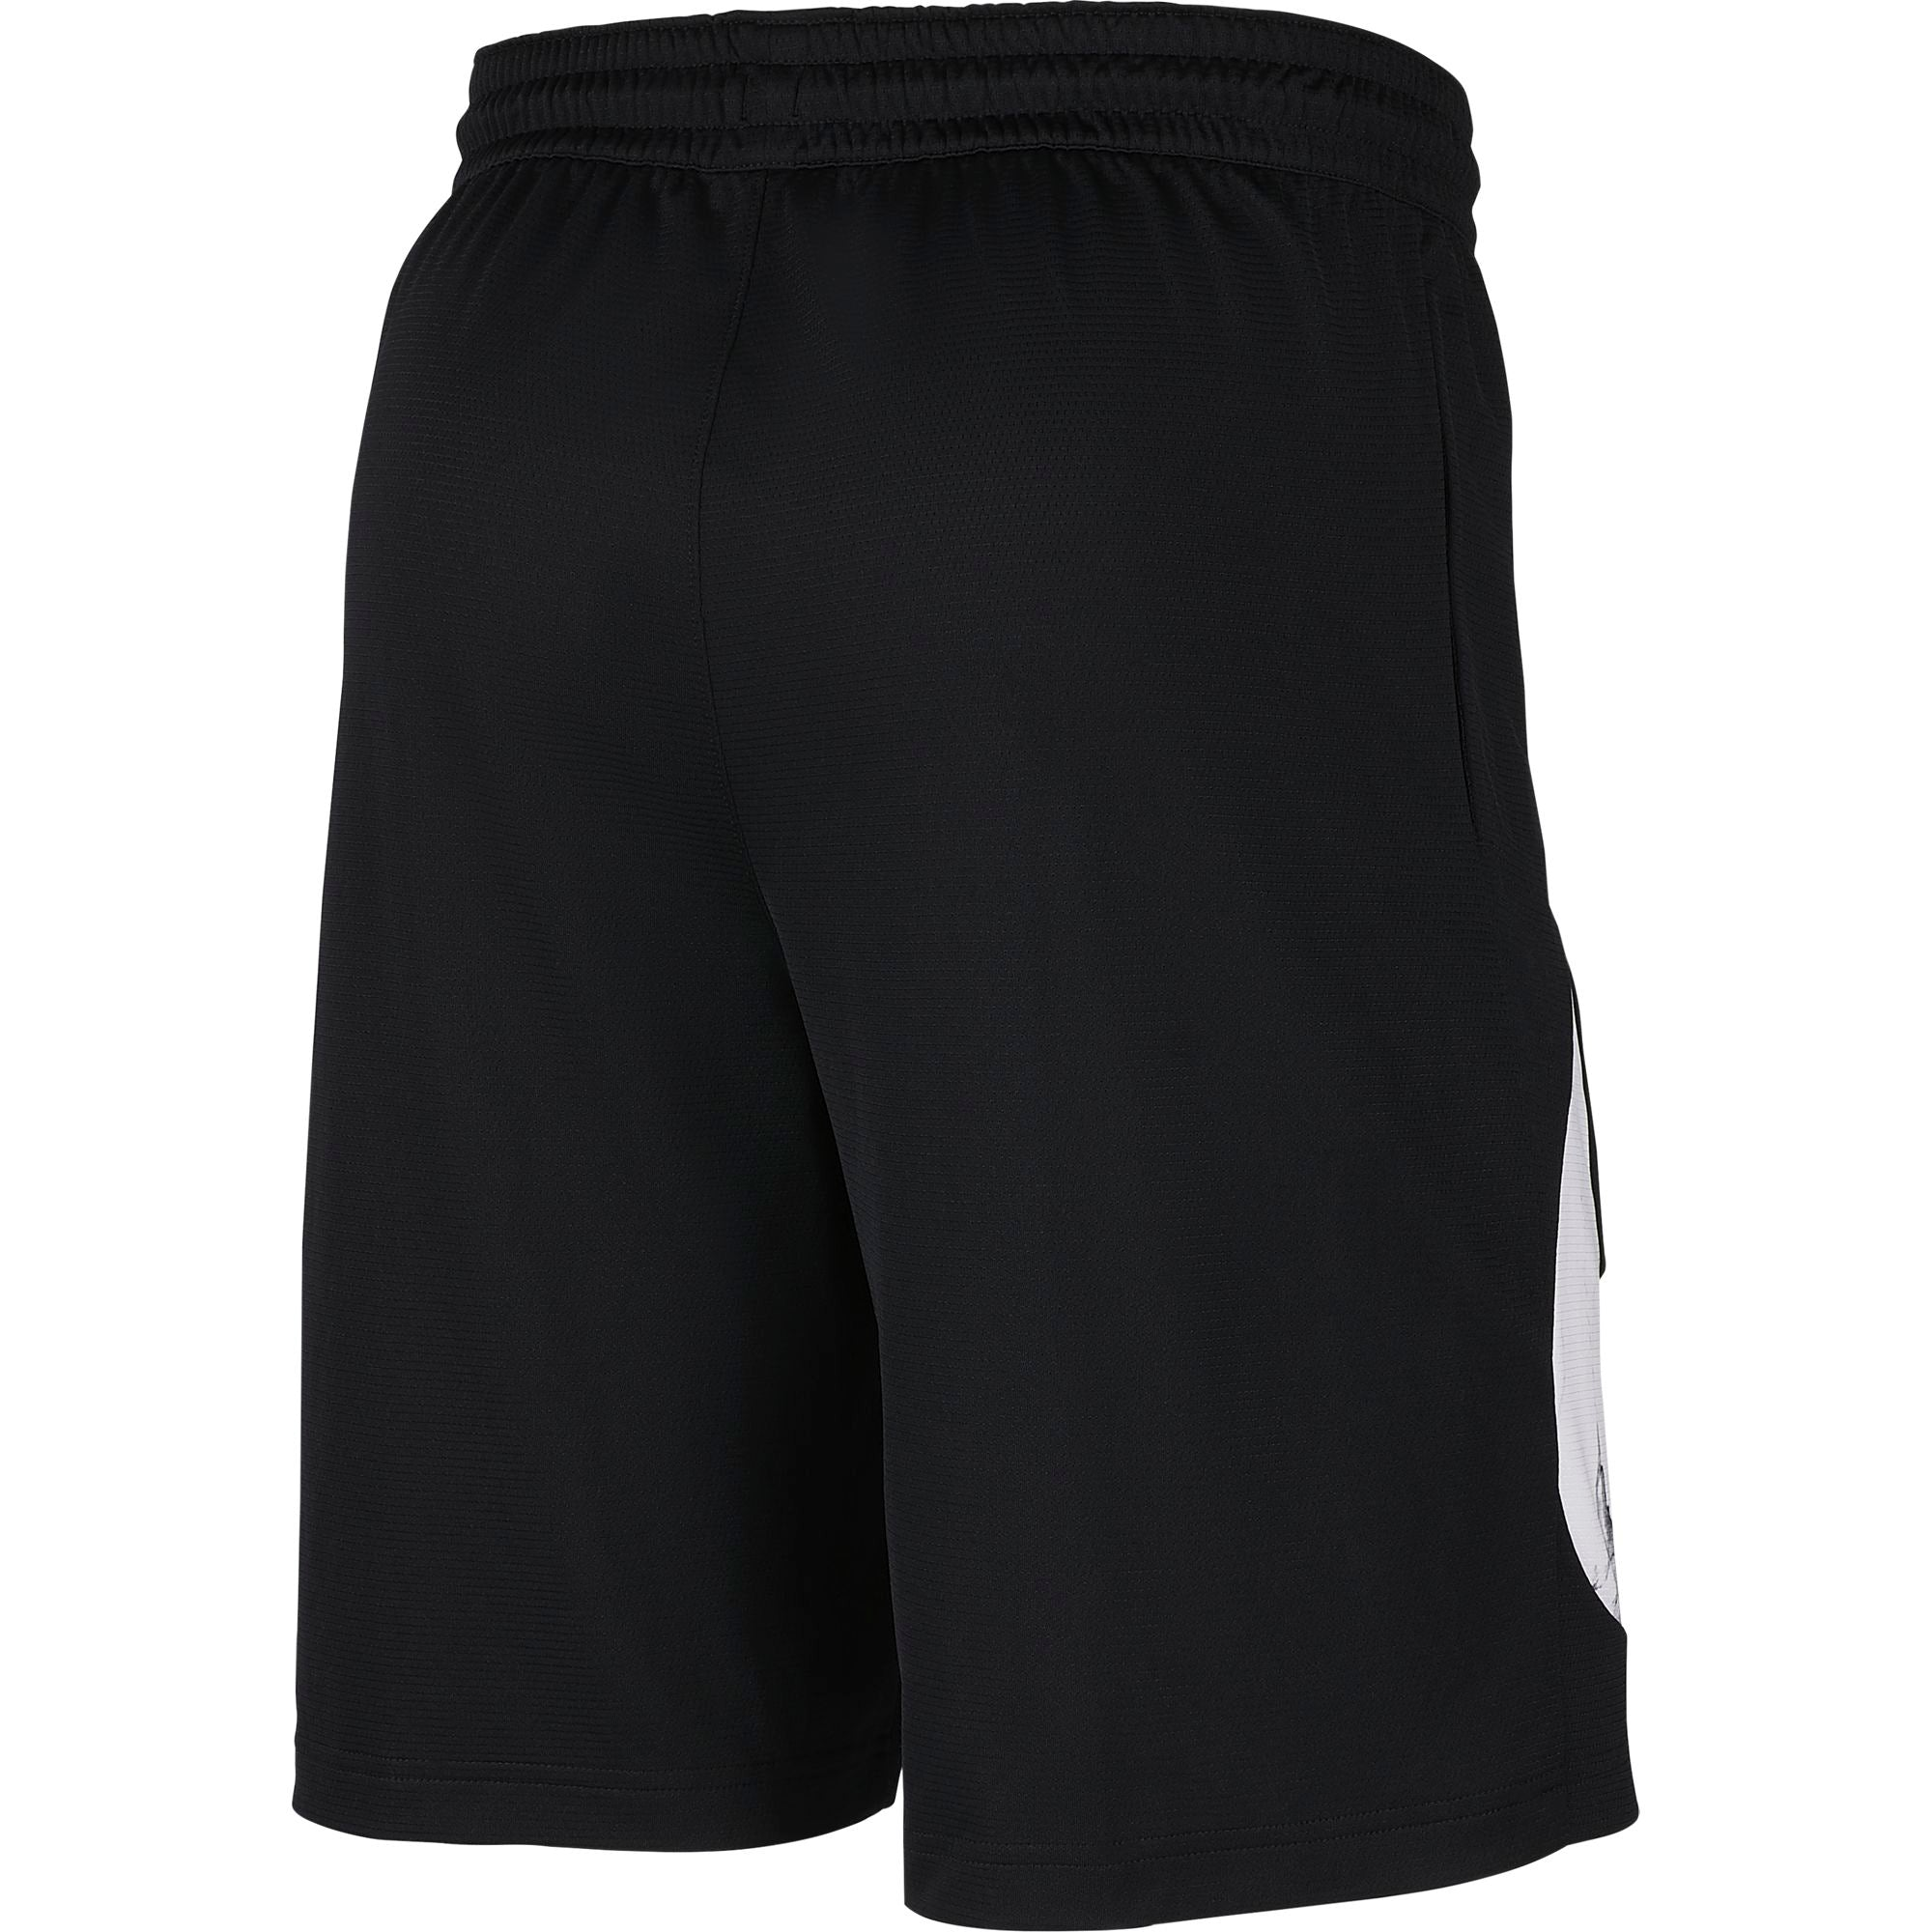 Nike Basketball Dri-Fit HBR Marble Shorts (inc. Tall Fit sizes) - Black/White